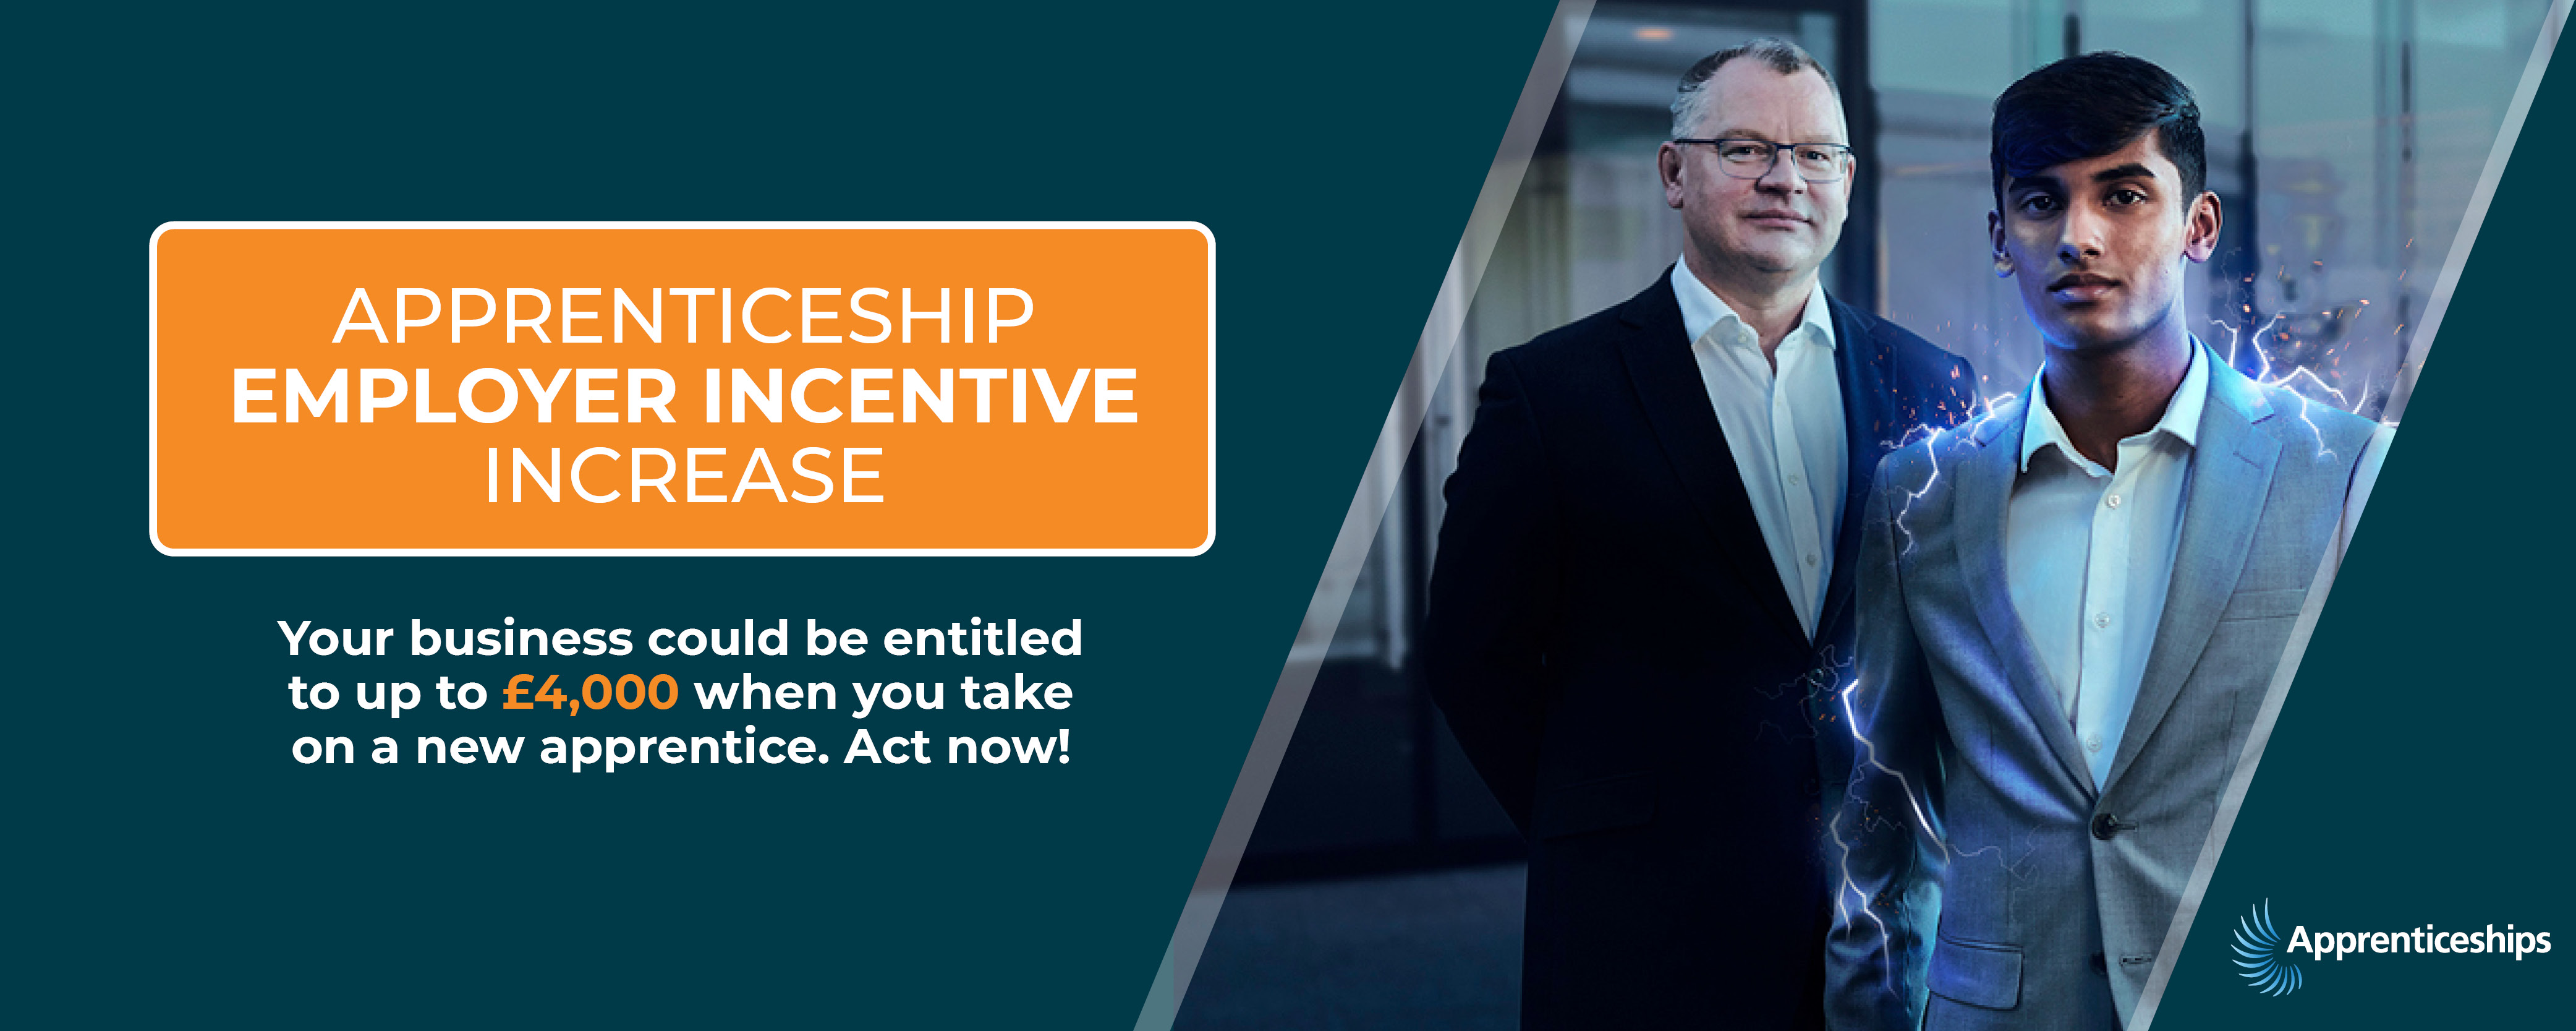 Apprenticeship Employer Incentive Increase - Find out more